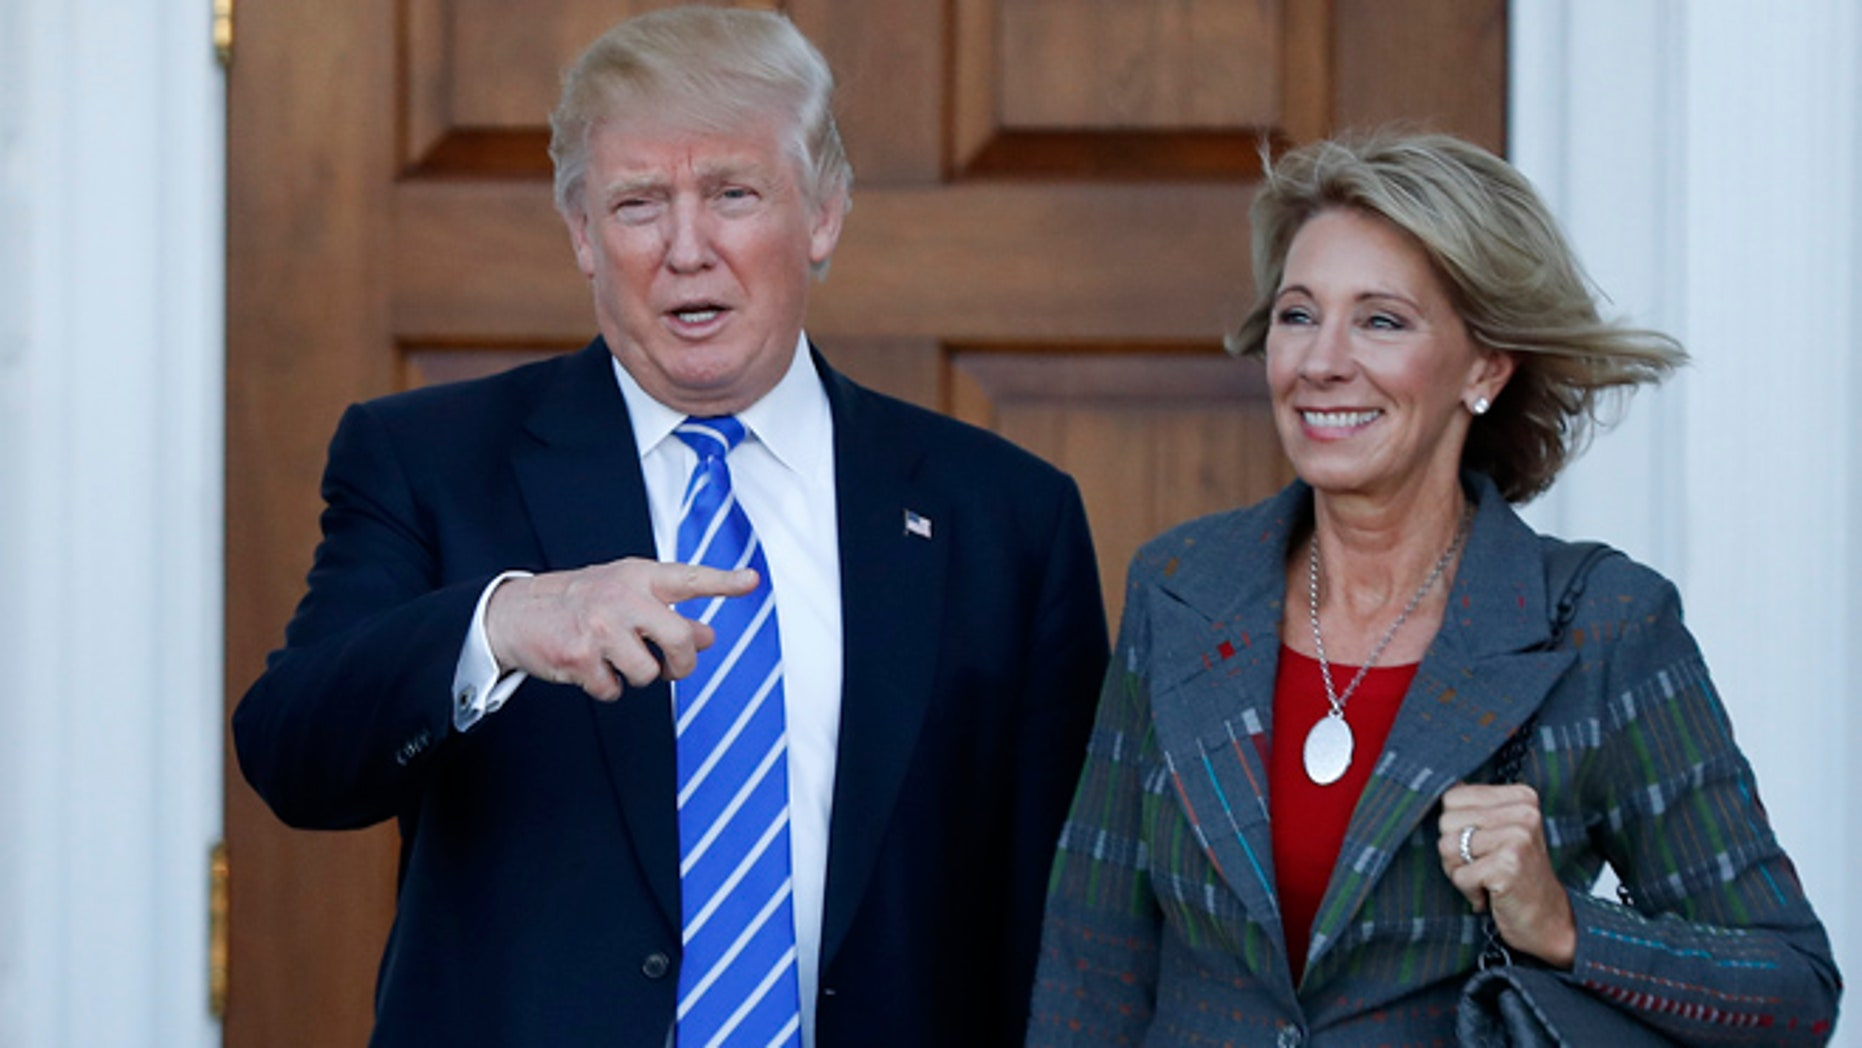 FILE - In this Nov. 19, 2016 photo, President-elect Donald Trump and Betsy DeVos pose for photographs at Trump National Golf Club Bedminster clubhouse in Bedminster, N.J. Trump has chosen charter school advocate DeVos as Education Secretary in his administration.